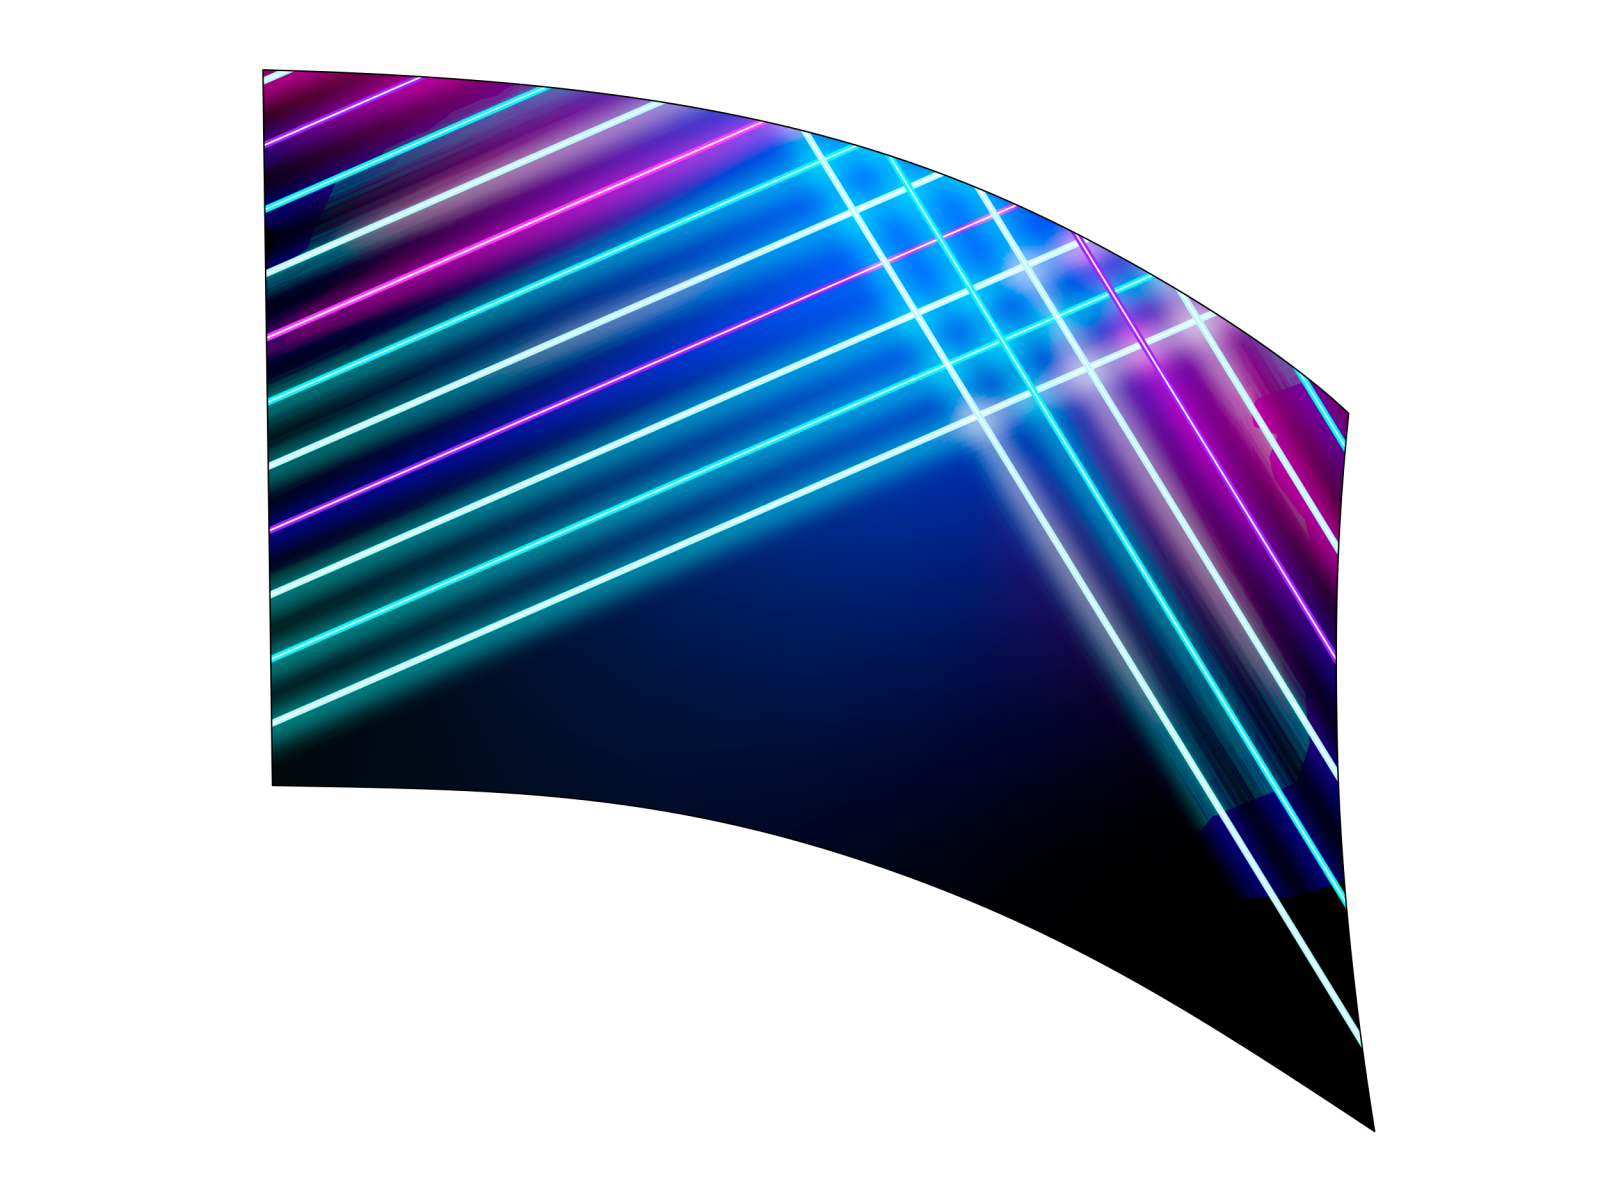 030215s - 36x52 Standard Abstract Laser Lines